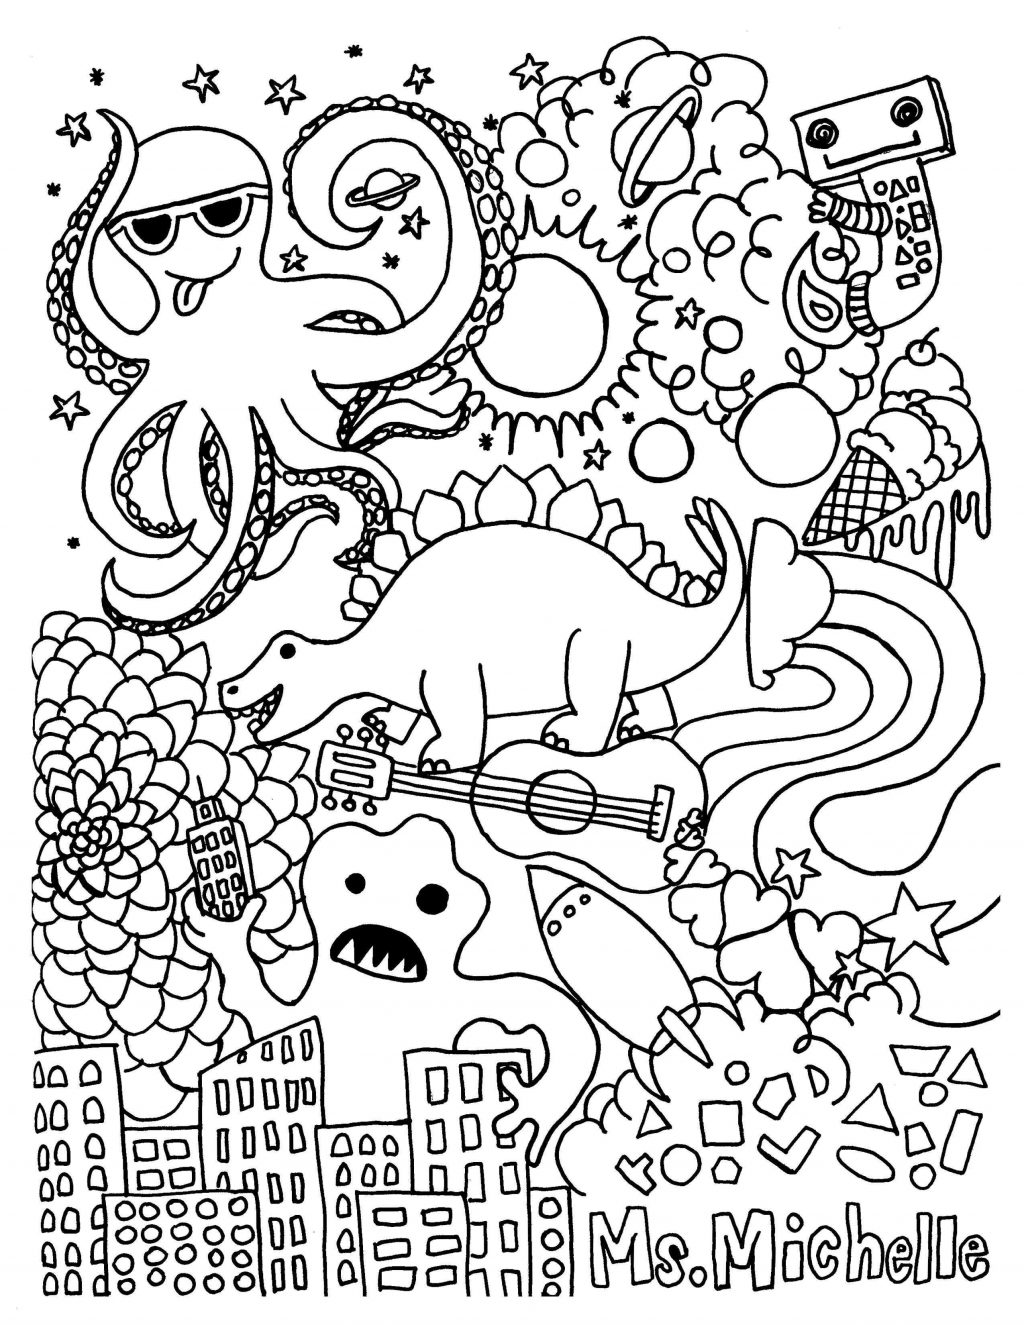 Coloring Page ~ Graffiti Coloring Pages Fresh Printable Adult